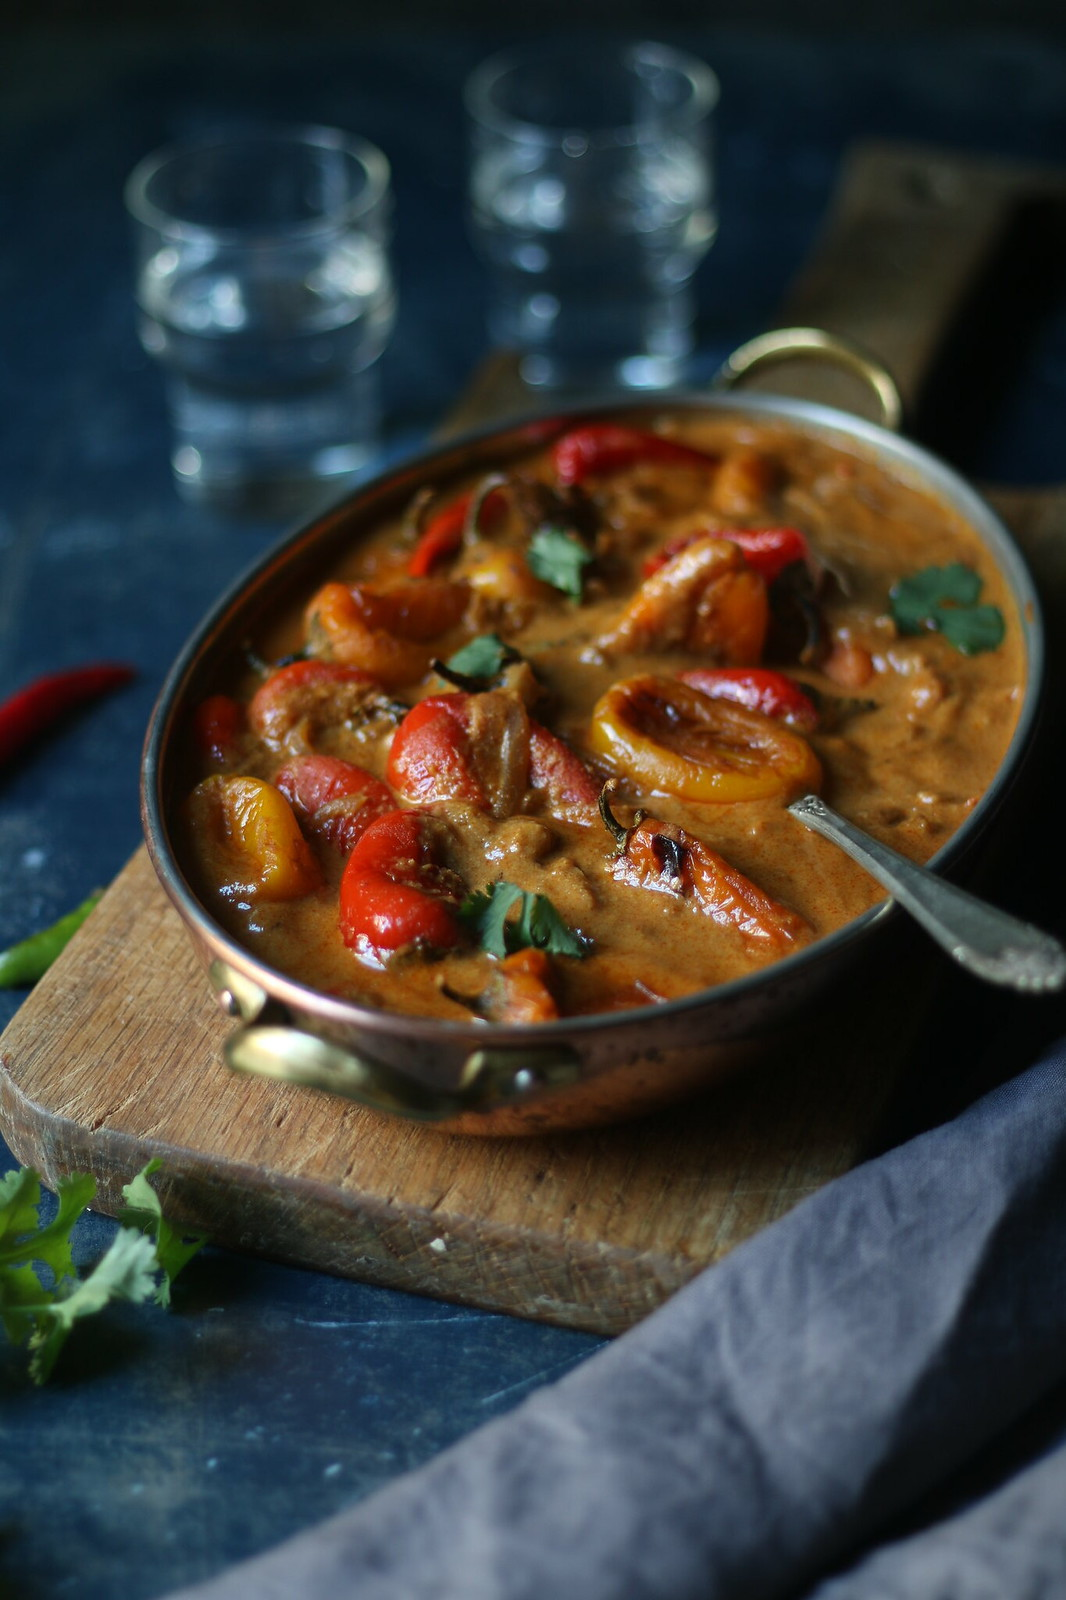 Mirch Ka Salan - Spicy Pepper Curry